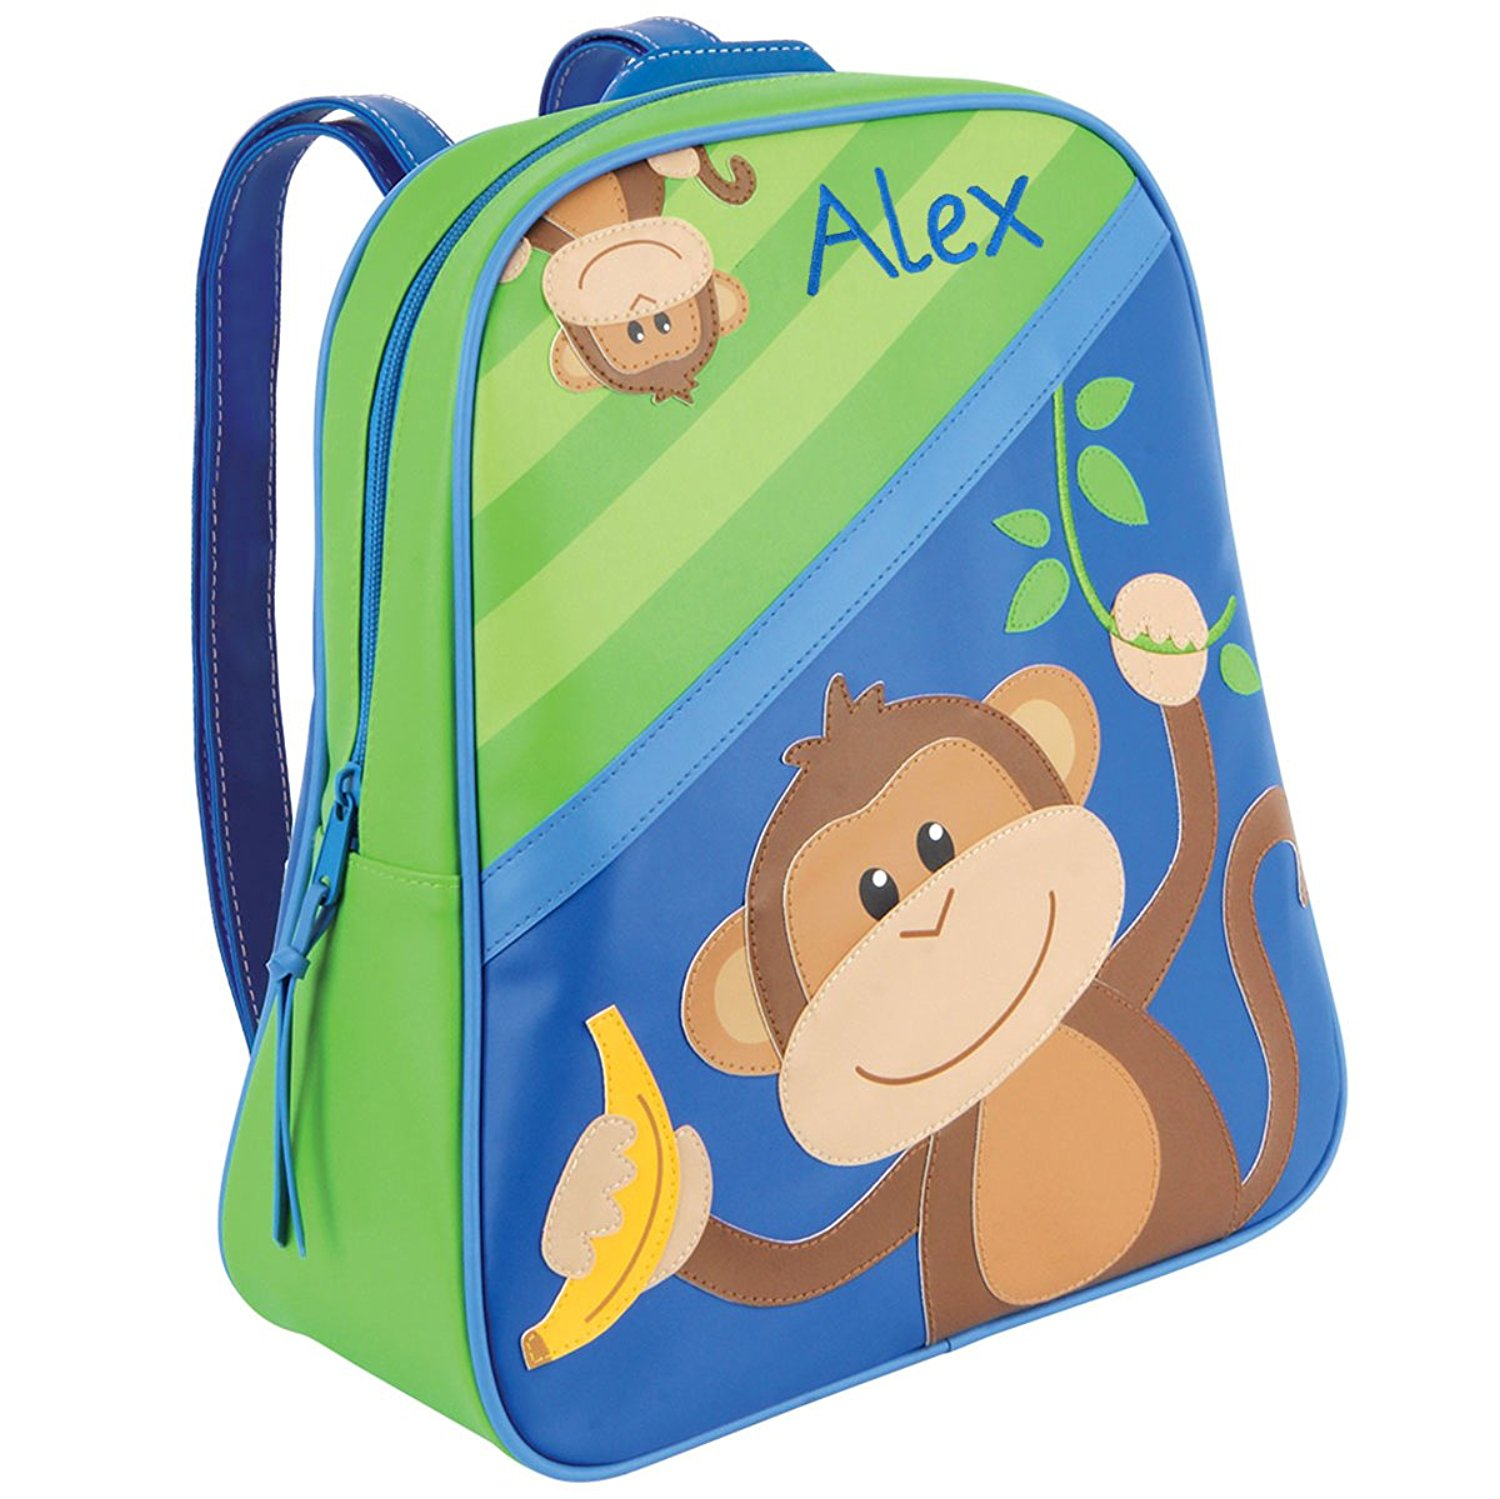 cab396ff82cd Personalized Stephen Joseph Go Go Boy Monkey Backpack with Embroidered Name